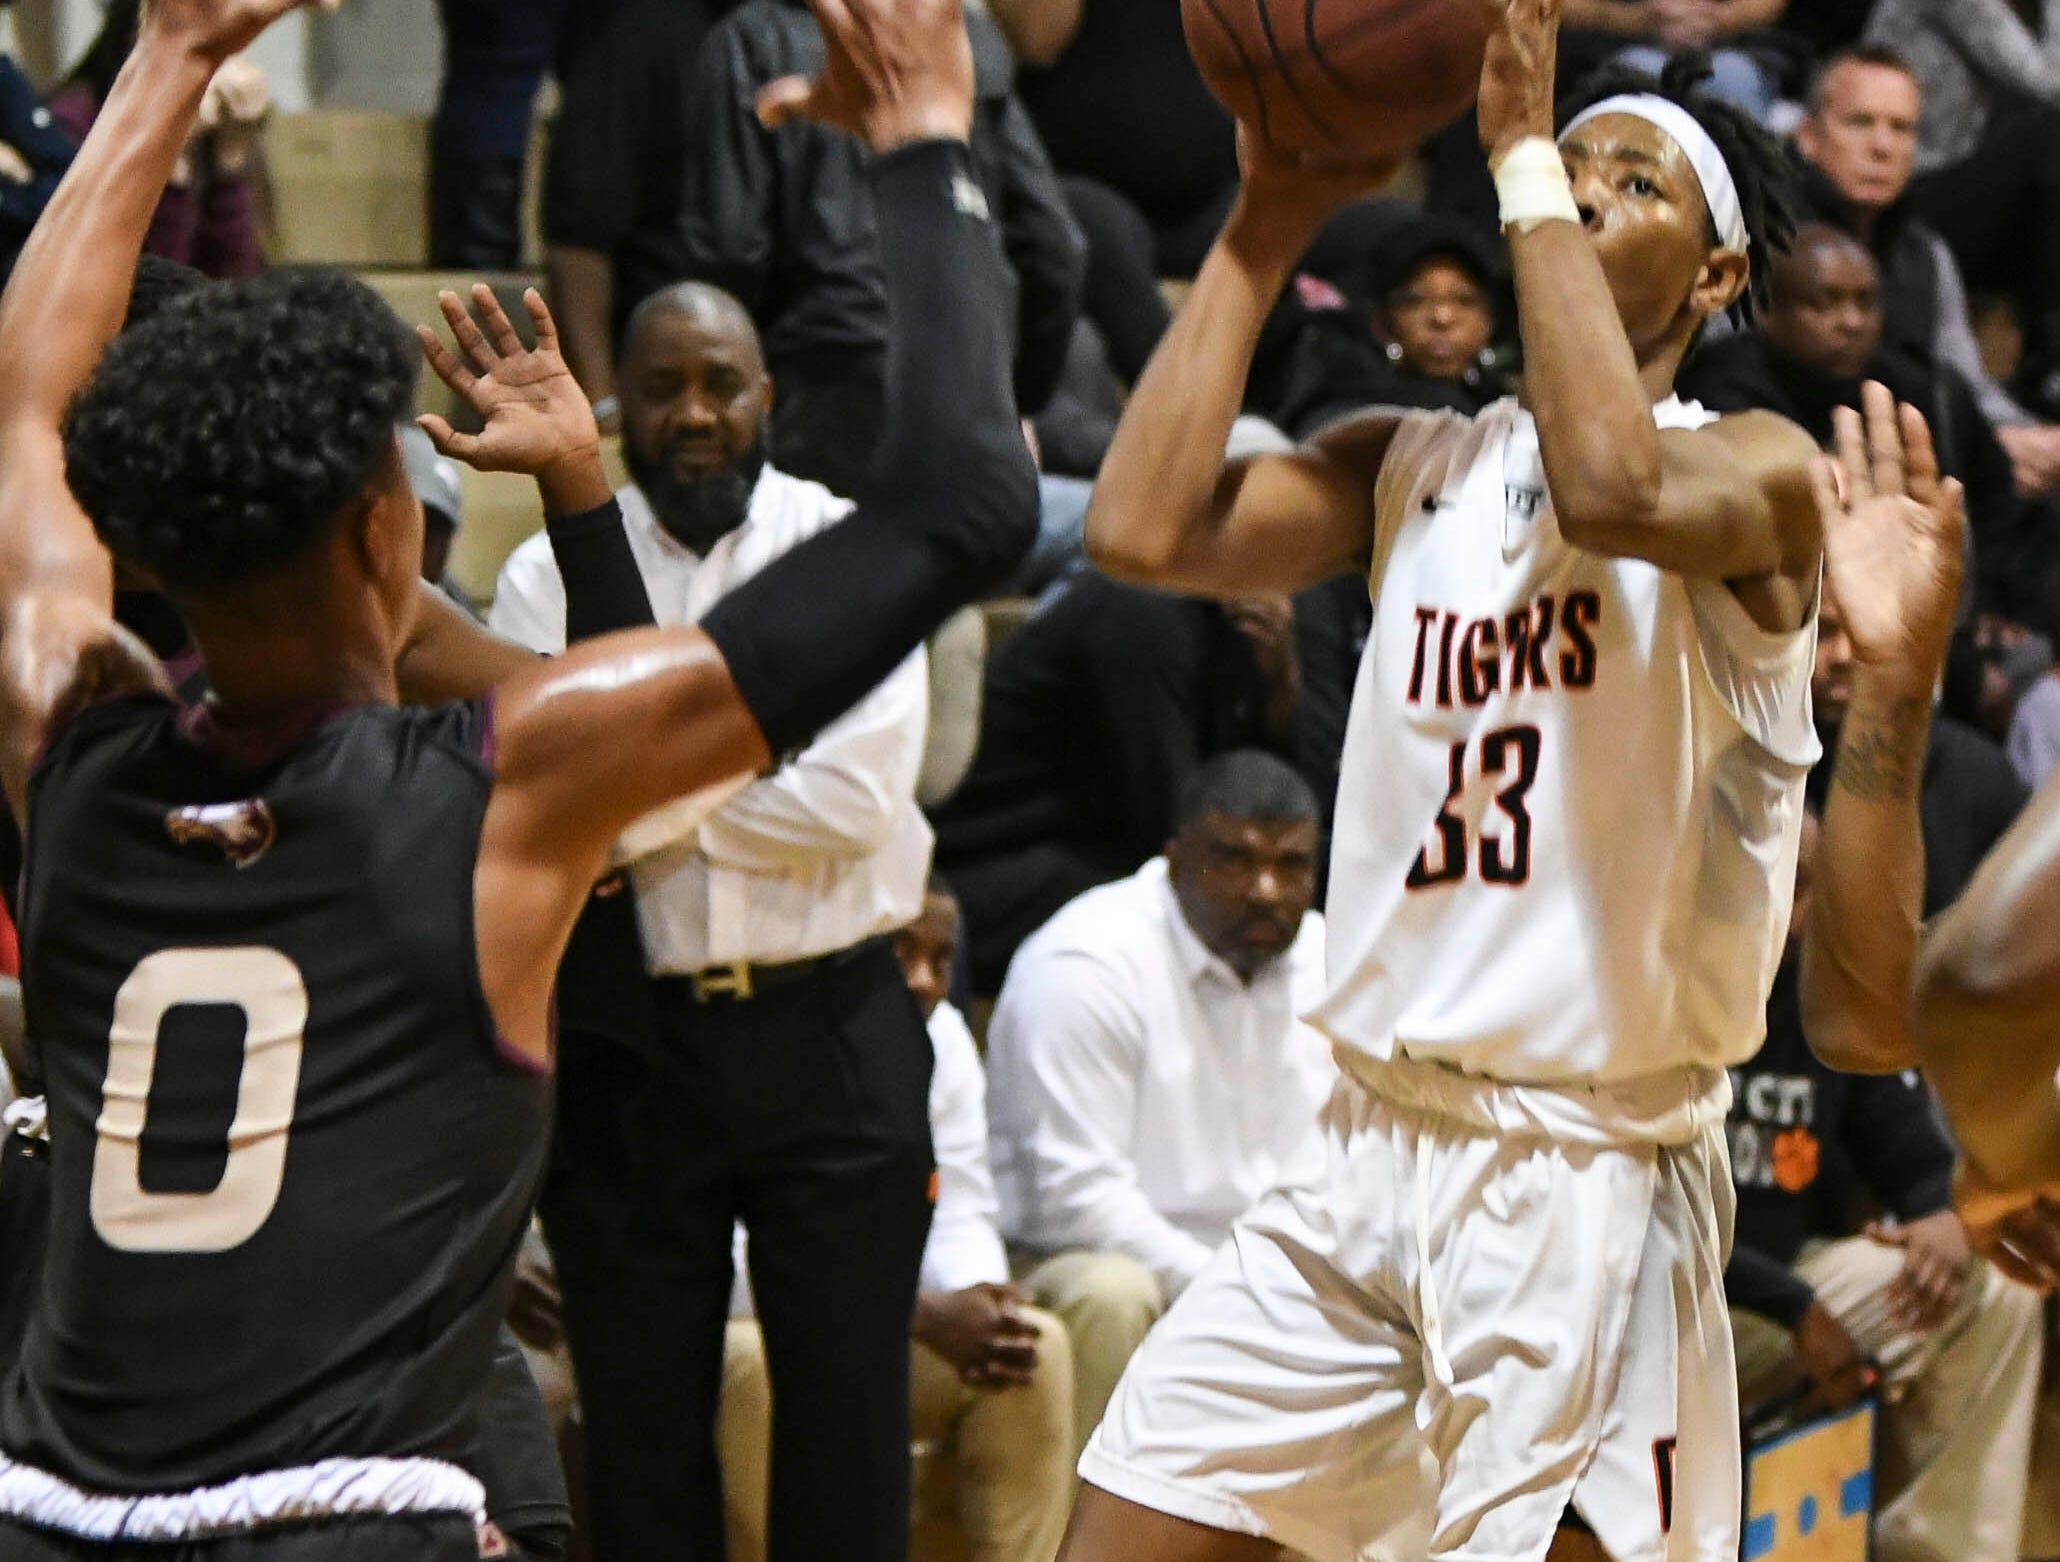 J Robinson of Cocoa shoots and scores during Tuesday's game against Astronaut.